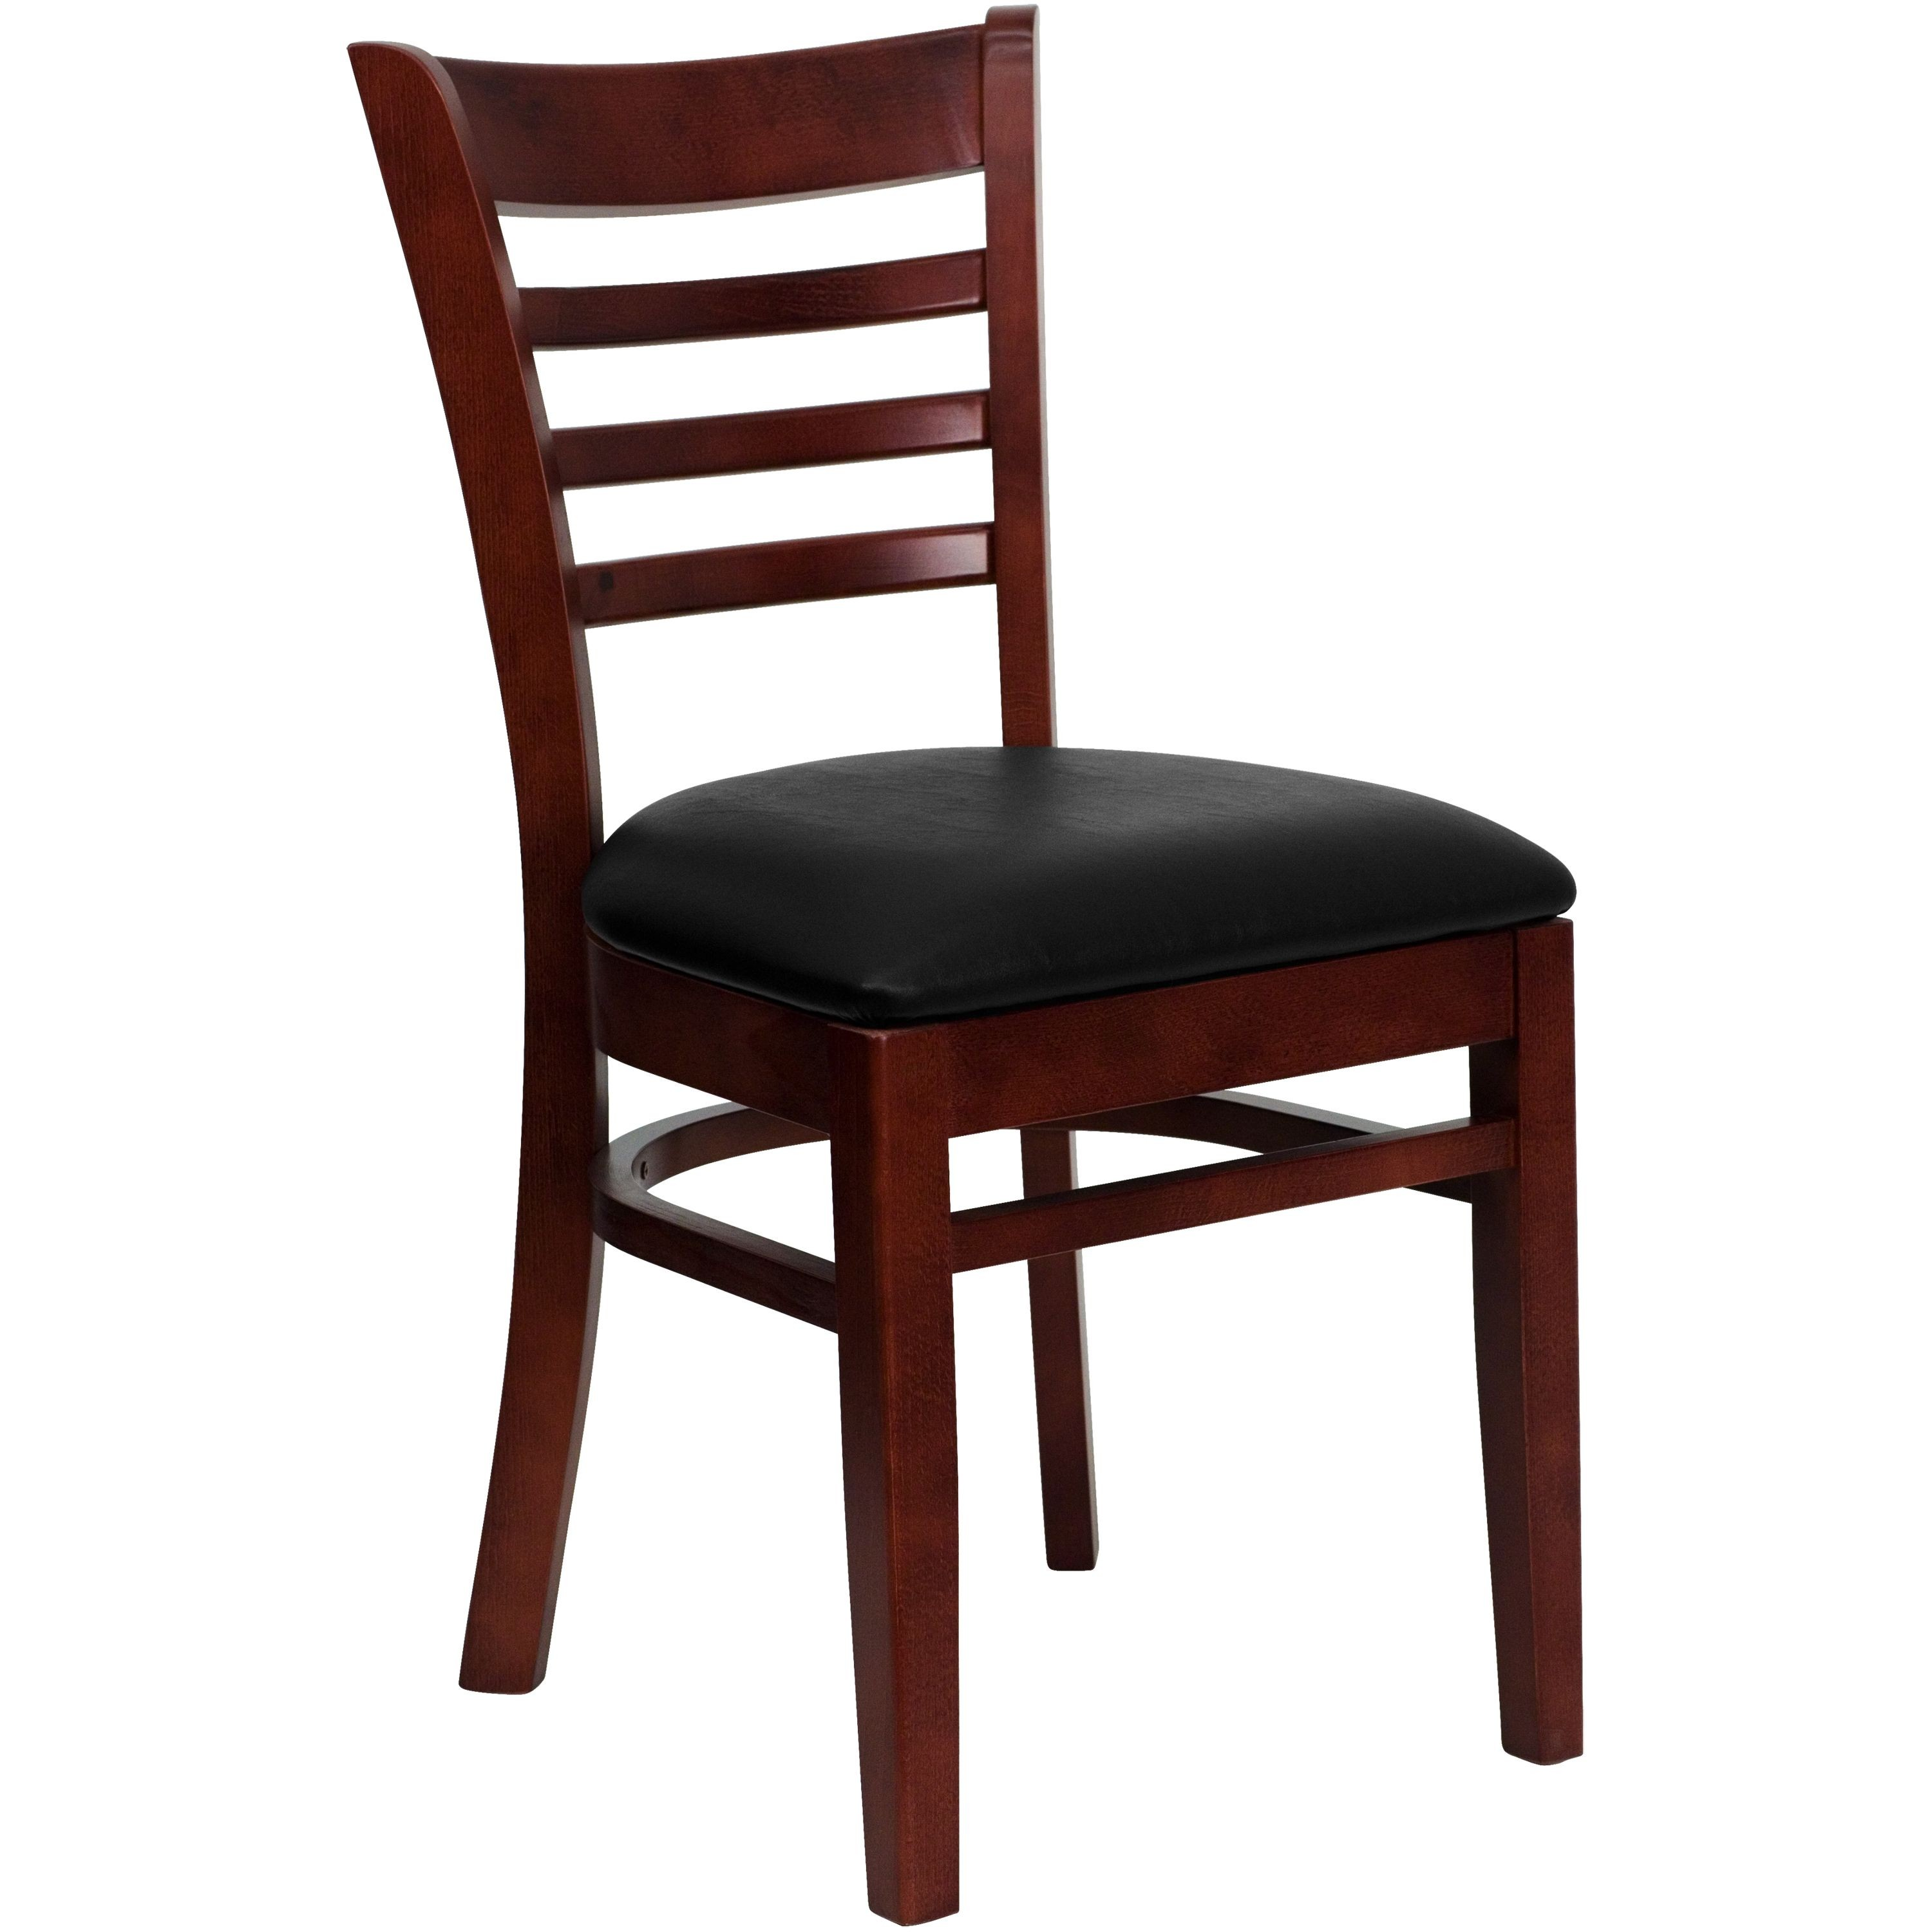 Flash Furniture XU-DGW0005LAD-MAH-BLKV-GG Ladder Back Mahogany Wood Chair with Black Vinyl Seat